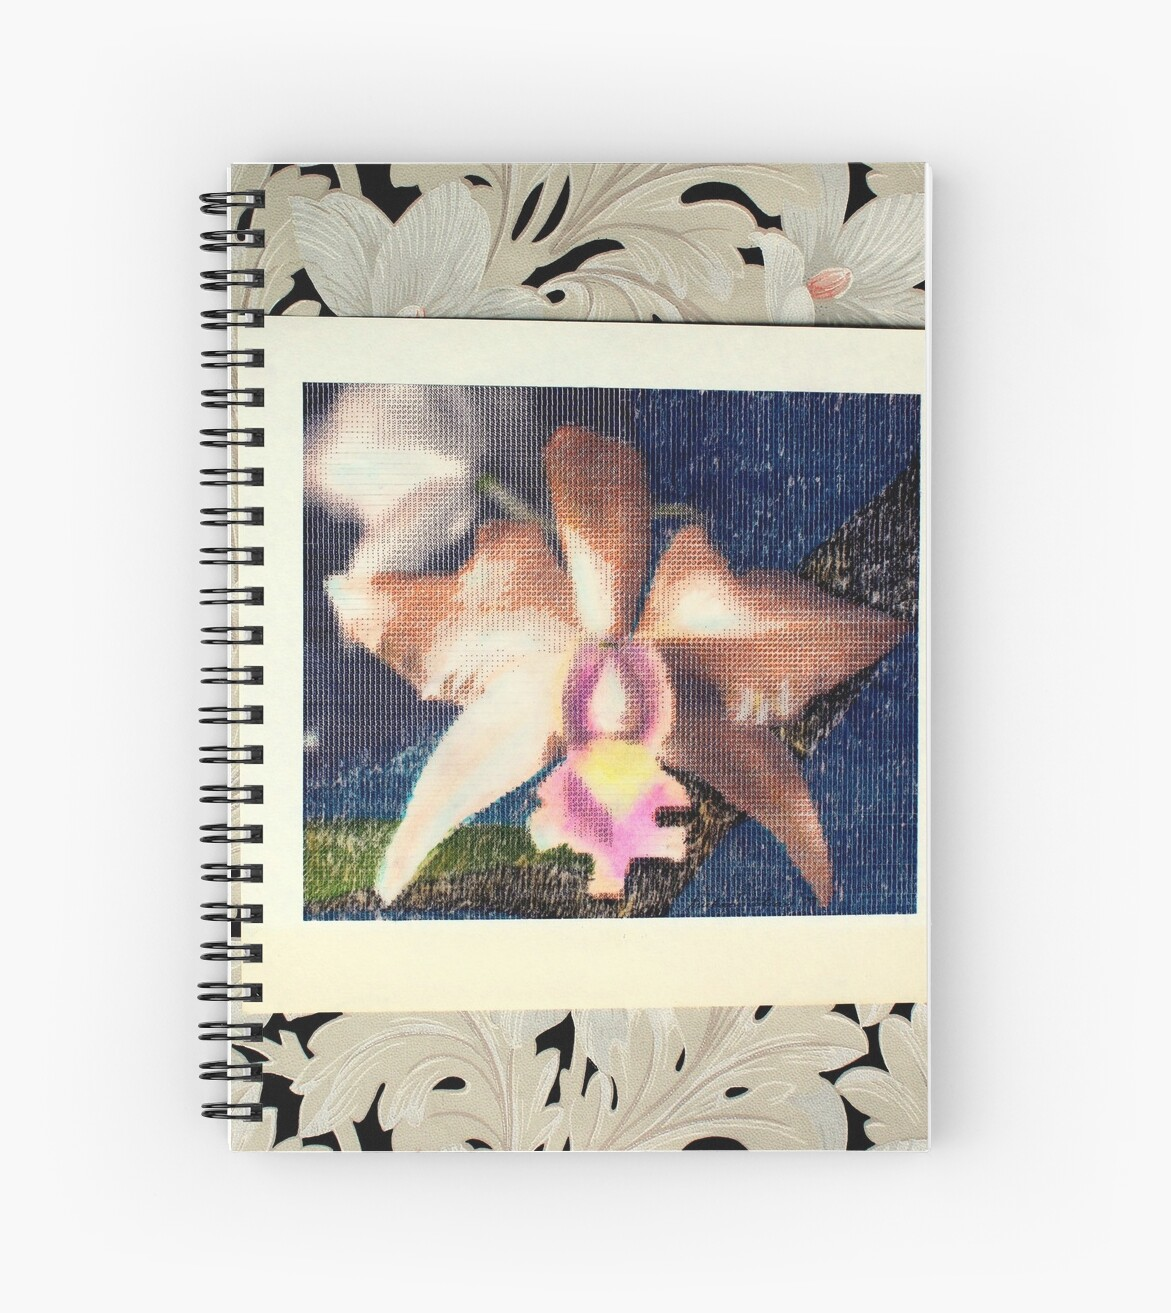 Not Your Usual Corsage Cattleya Spiral Notebook By Michael May